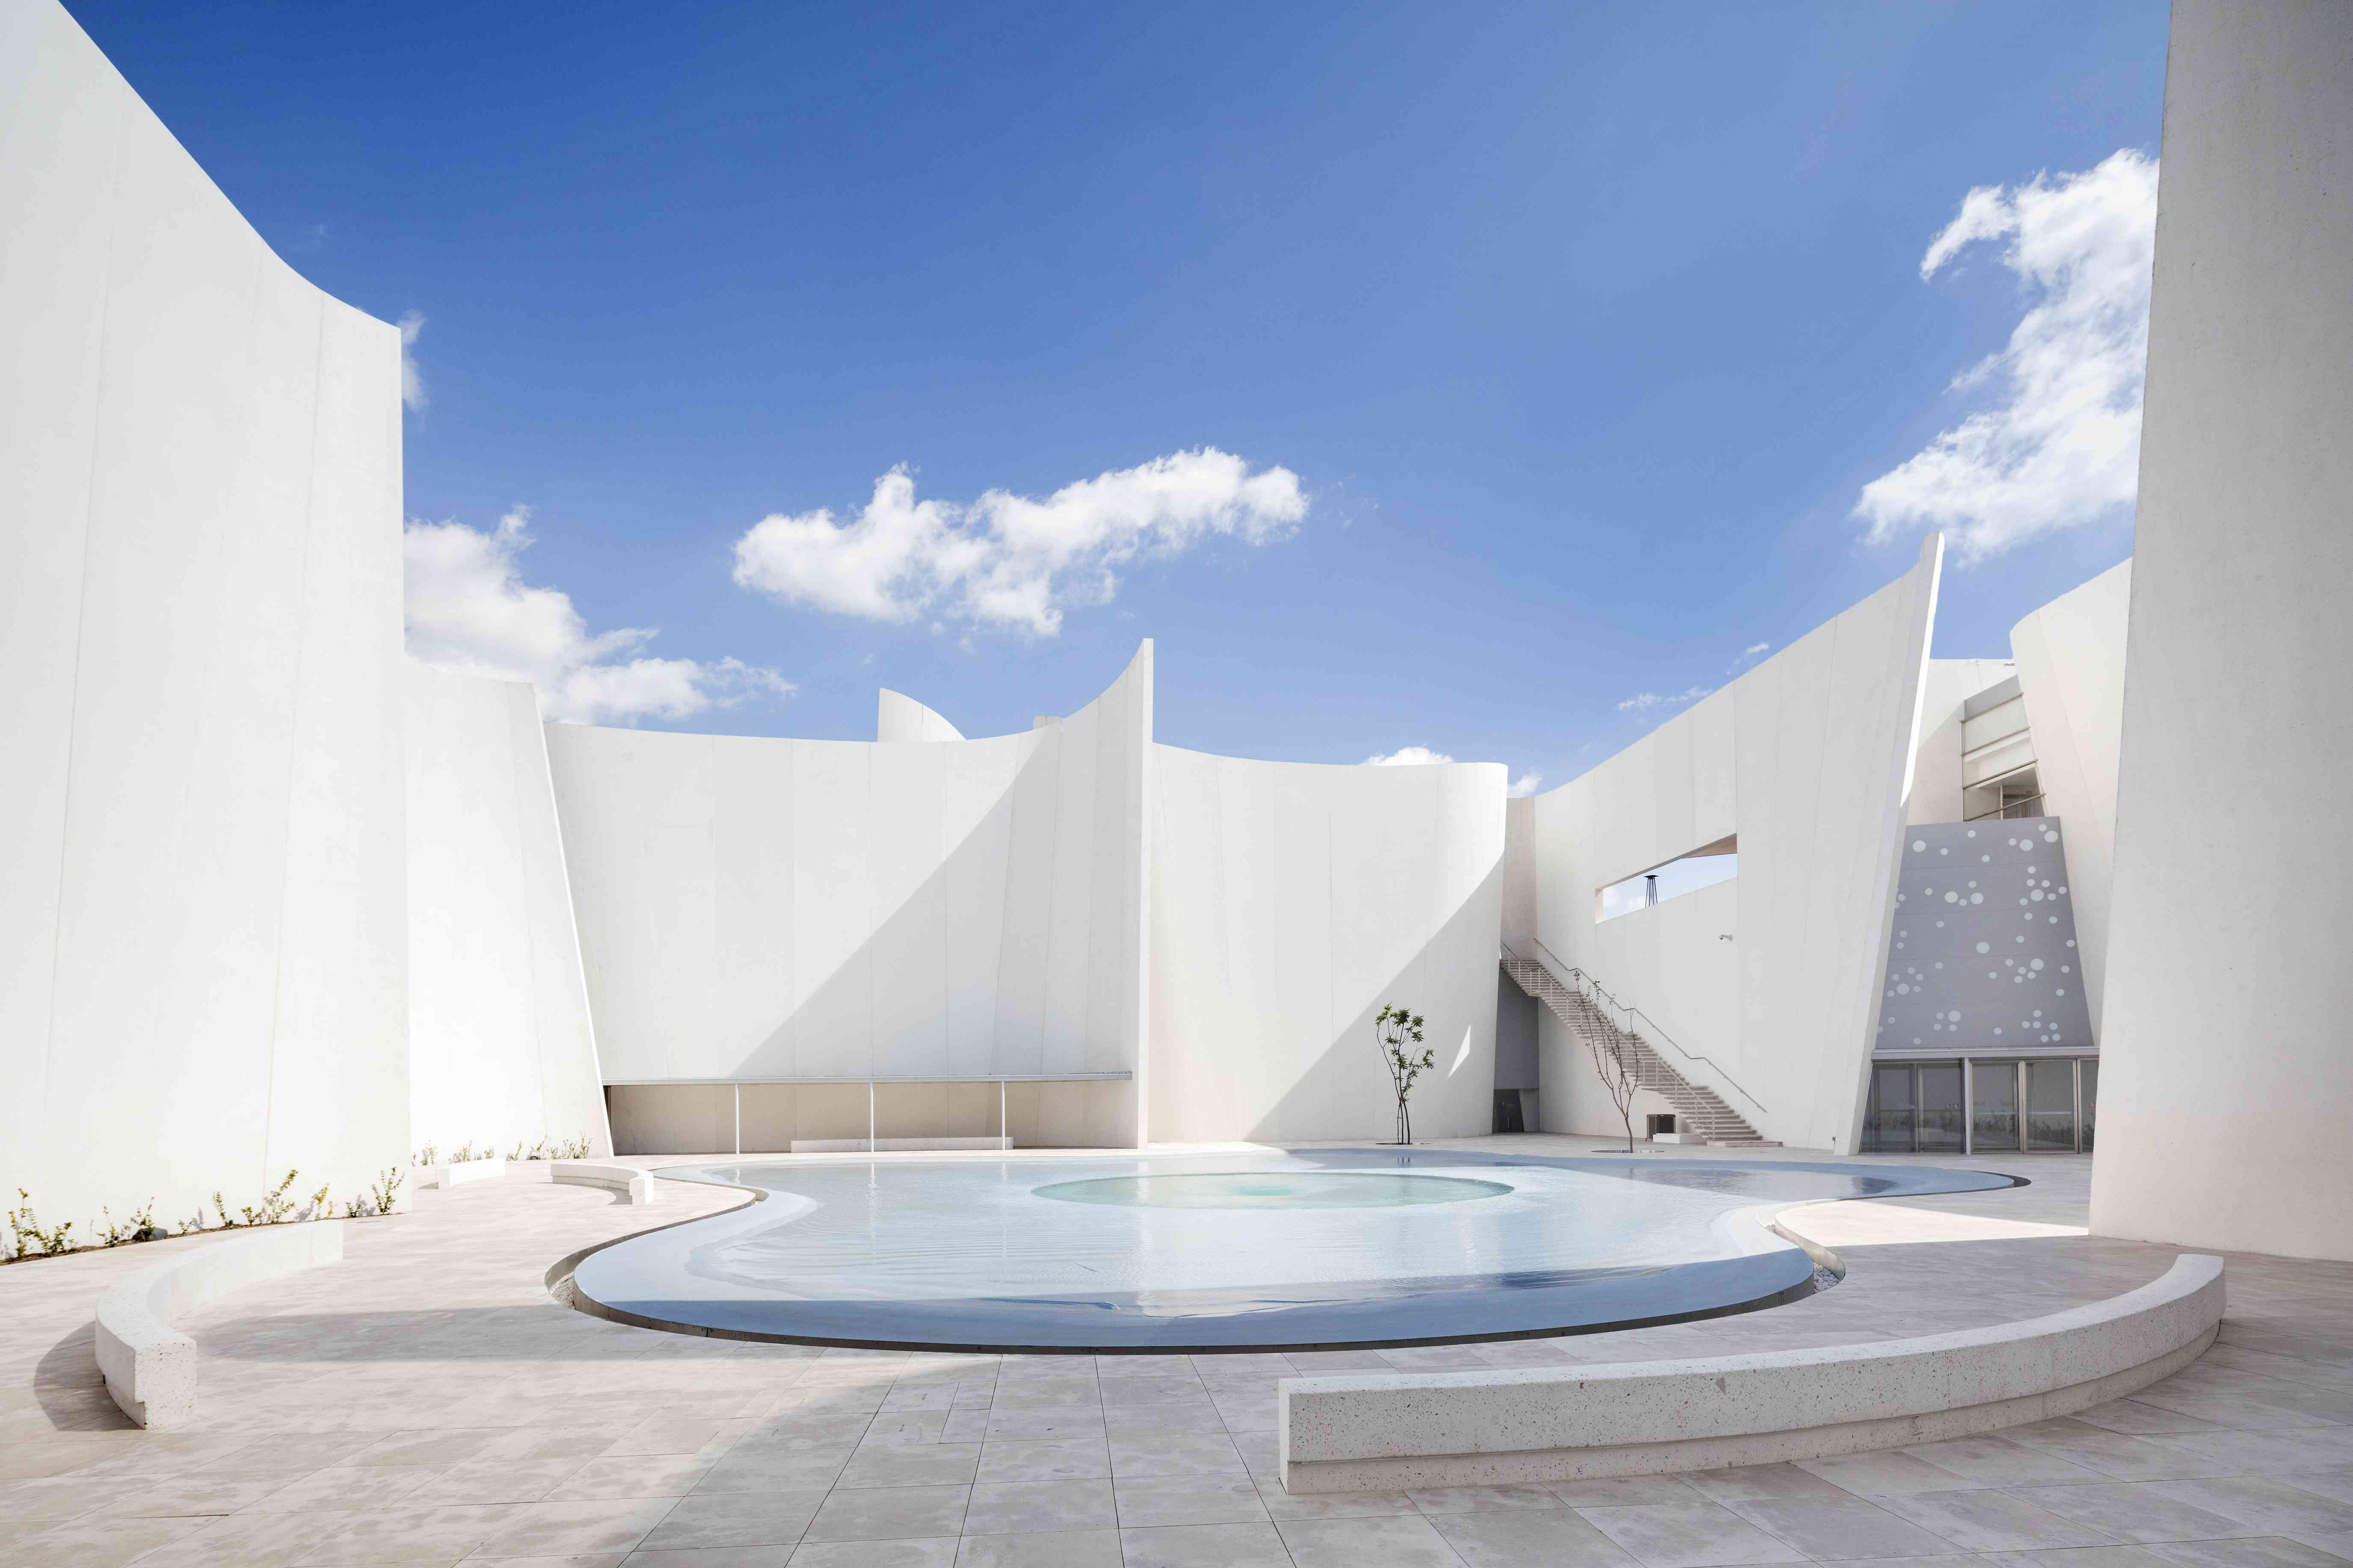 Courtyard of the International Museum of the Baroque in Puebla, Mexico with tall white curving walls